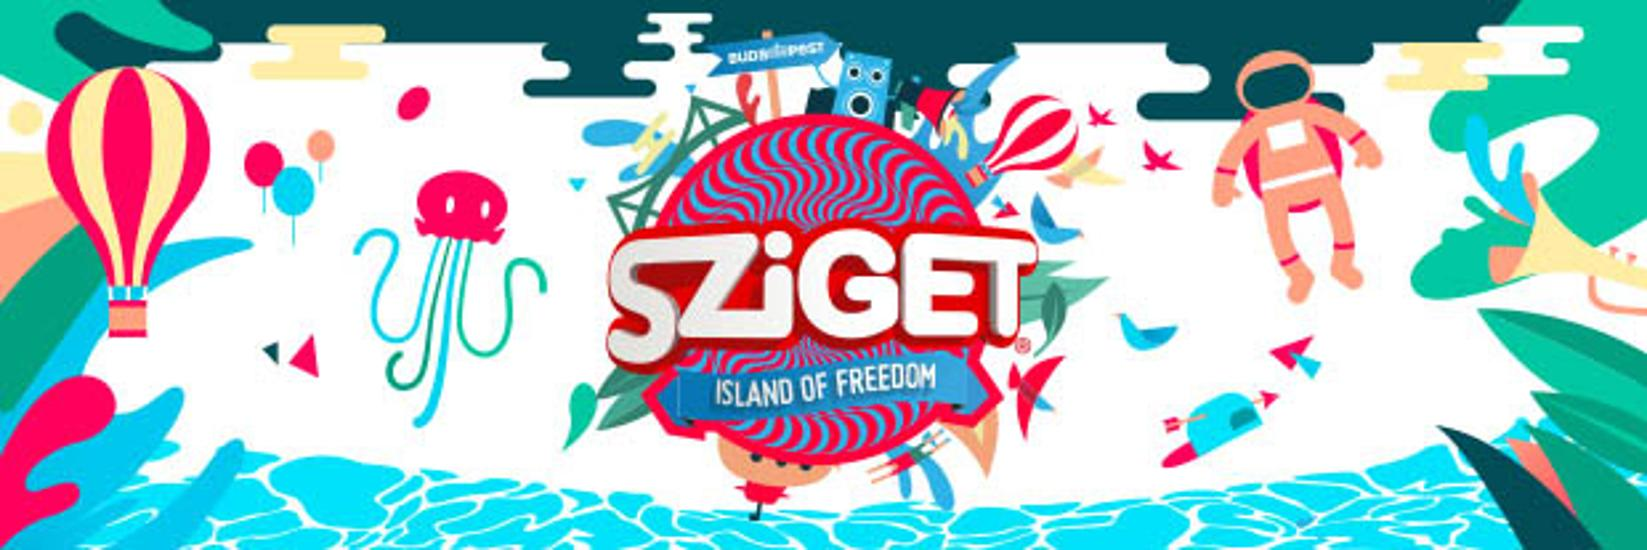 New Names For Sziget Festival Revealed